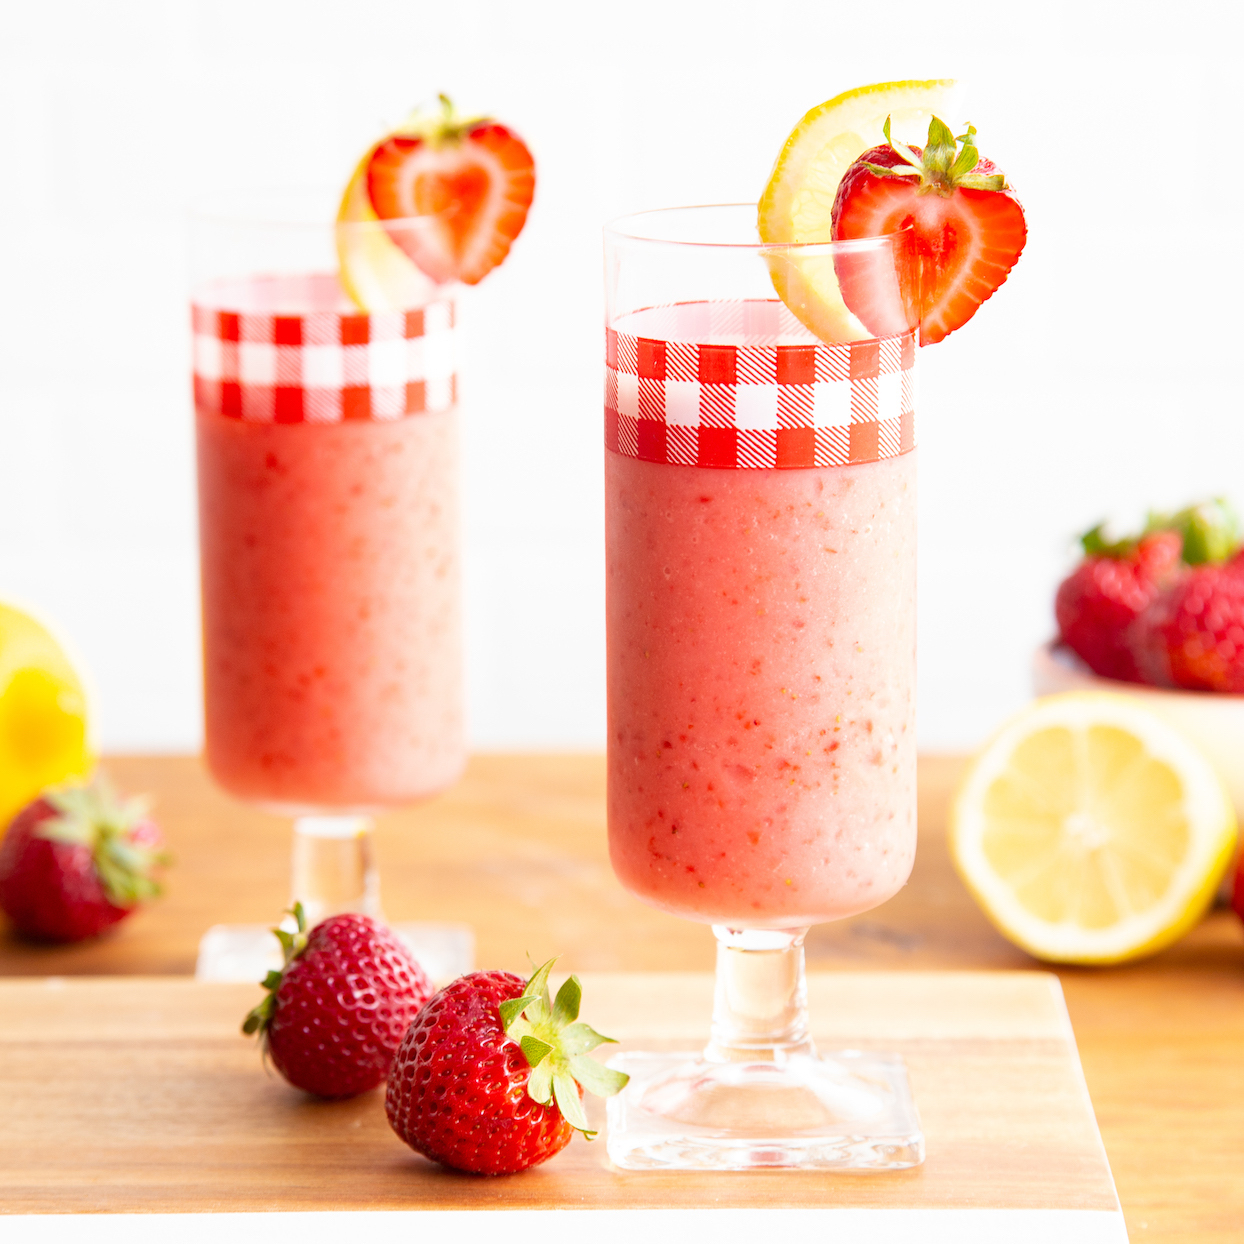 15 Weight Loss Smoothie Recipes Eatingwell